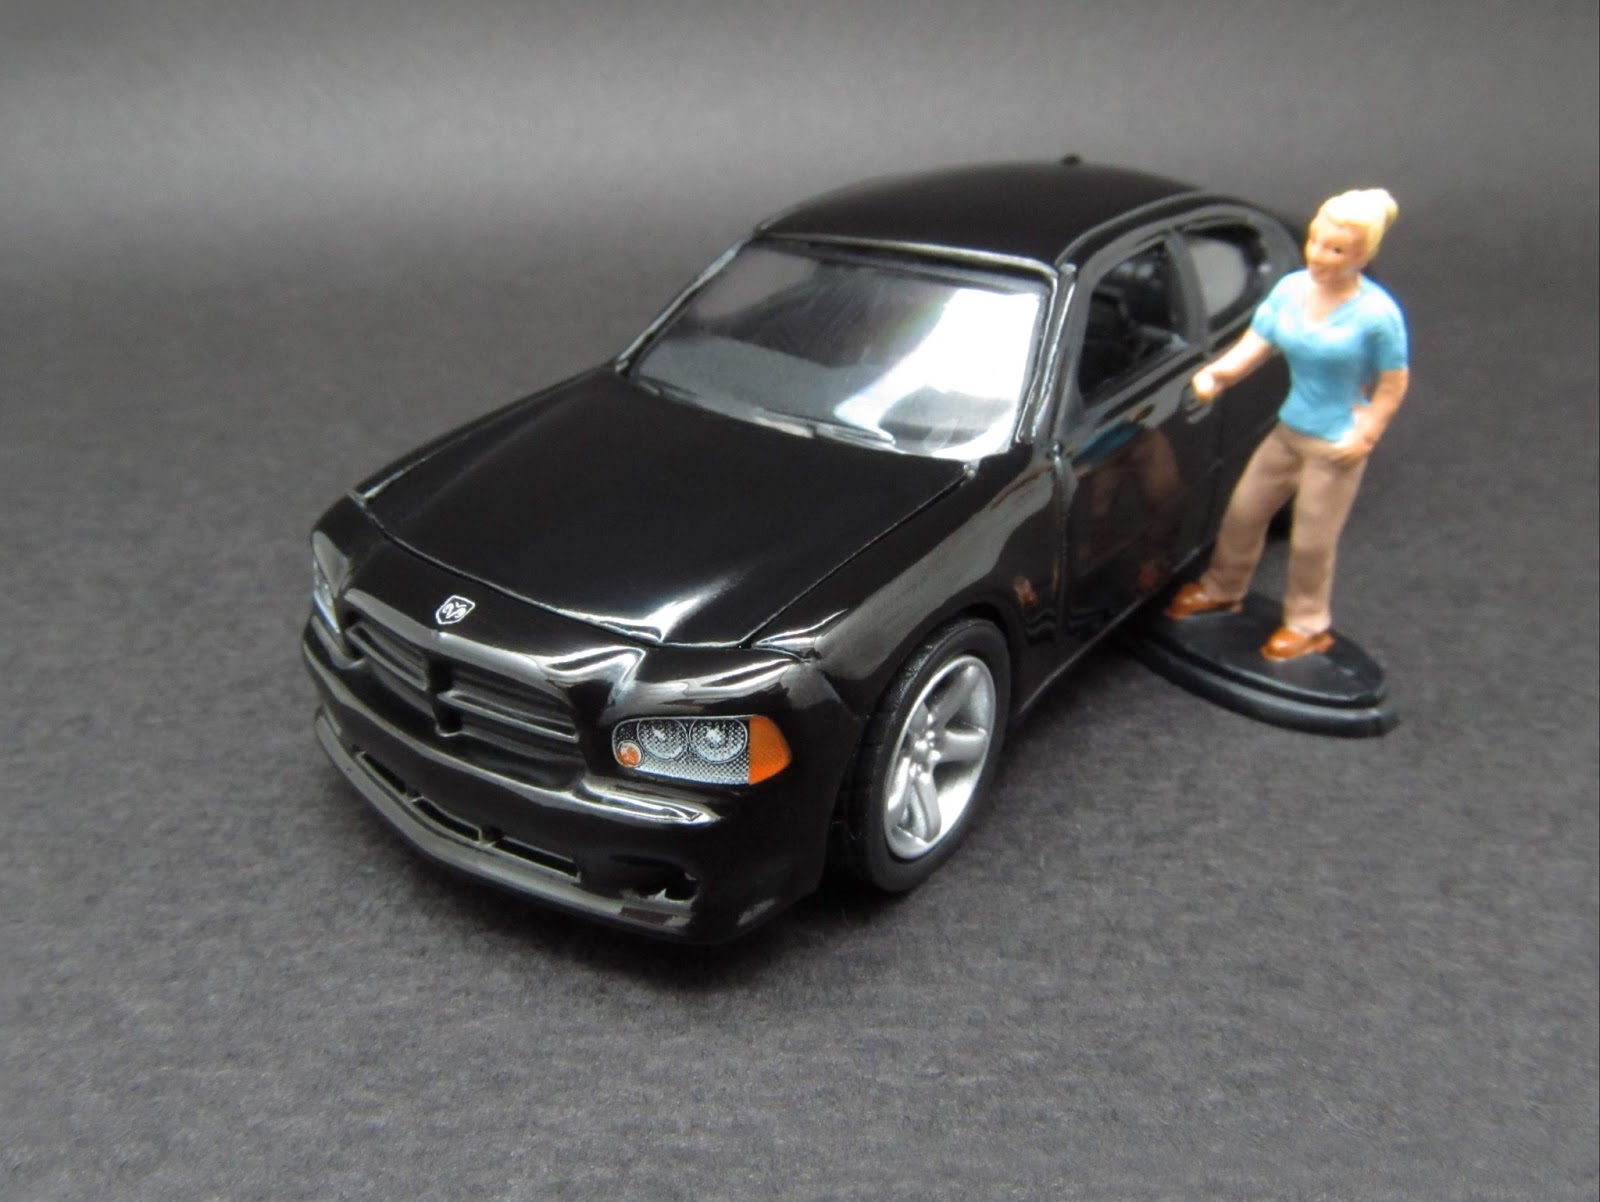 Http yihj0750 blogspot com 2011 04 2008 dodge charger unmarked police car_30 html